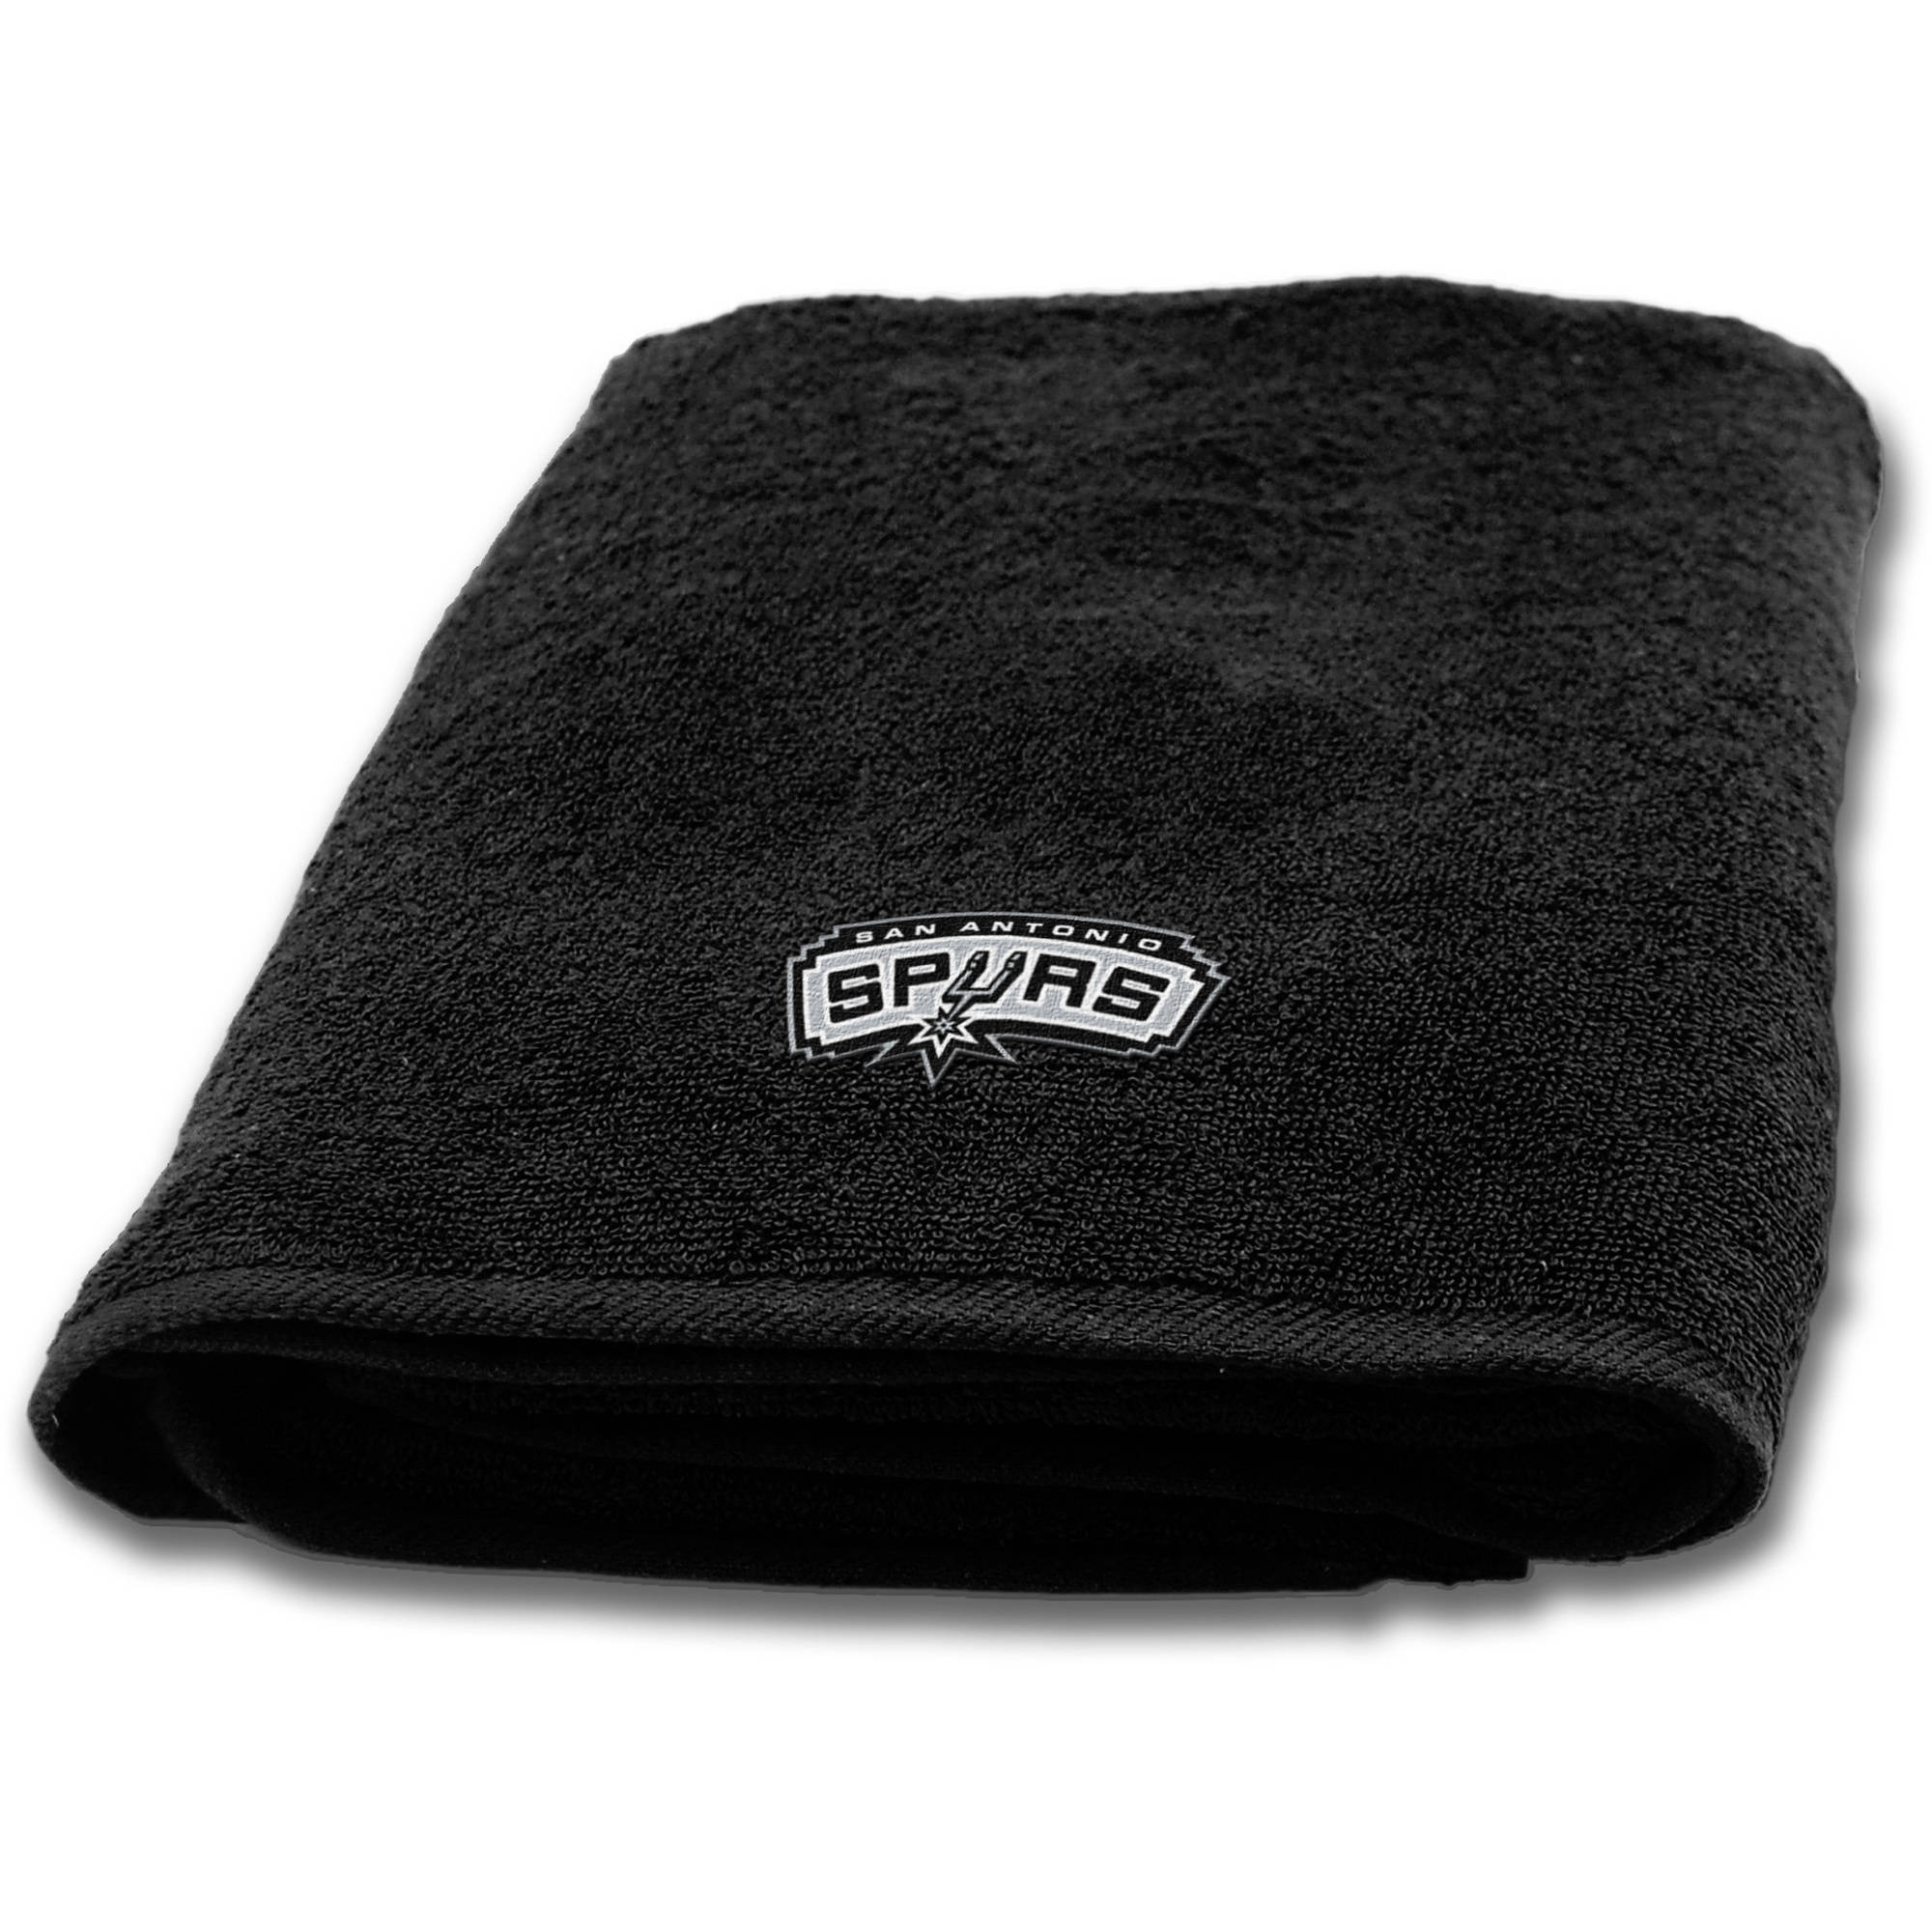 "NBA San Antonio Spurs Cotton 25""x50"" Applique Bath Towel, 1 Each"